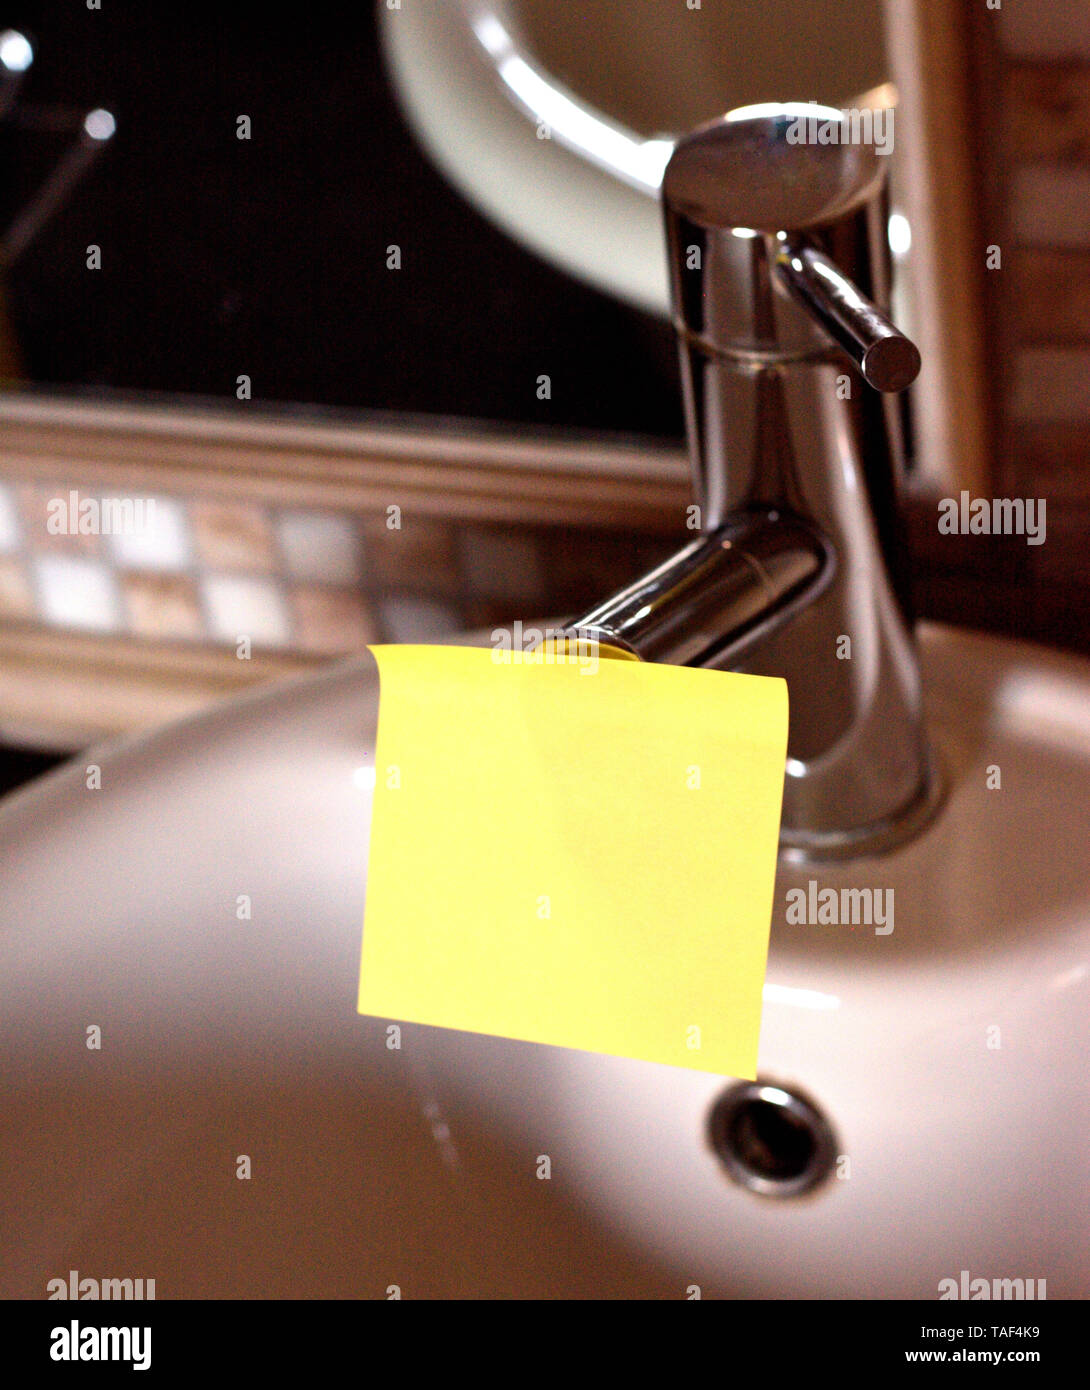 Piece of square paper use to give notation stick to water tap in bathroom - Stock Image